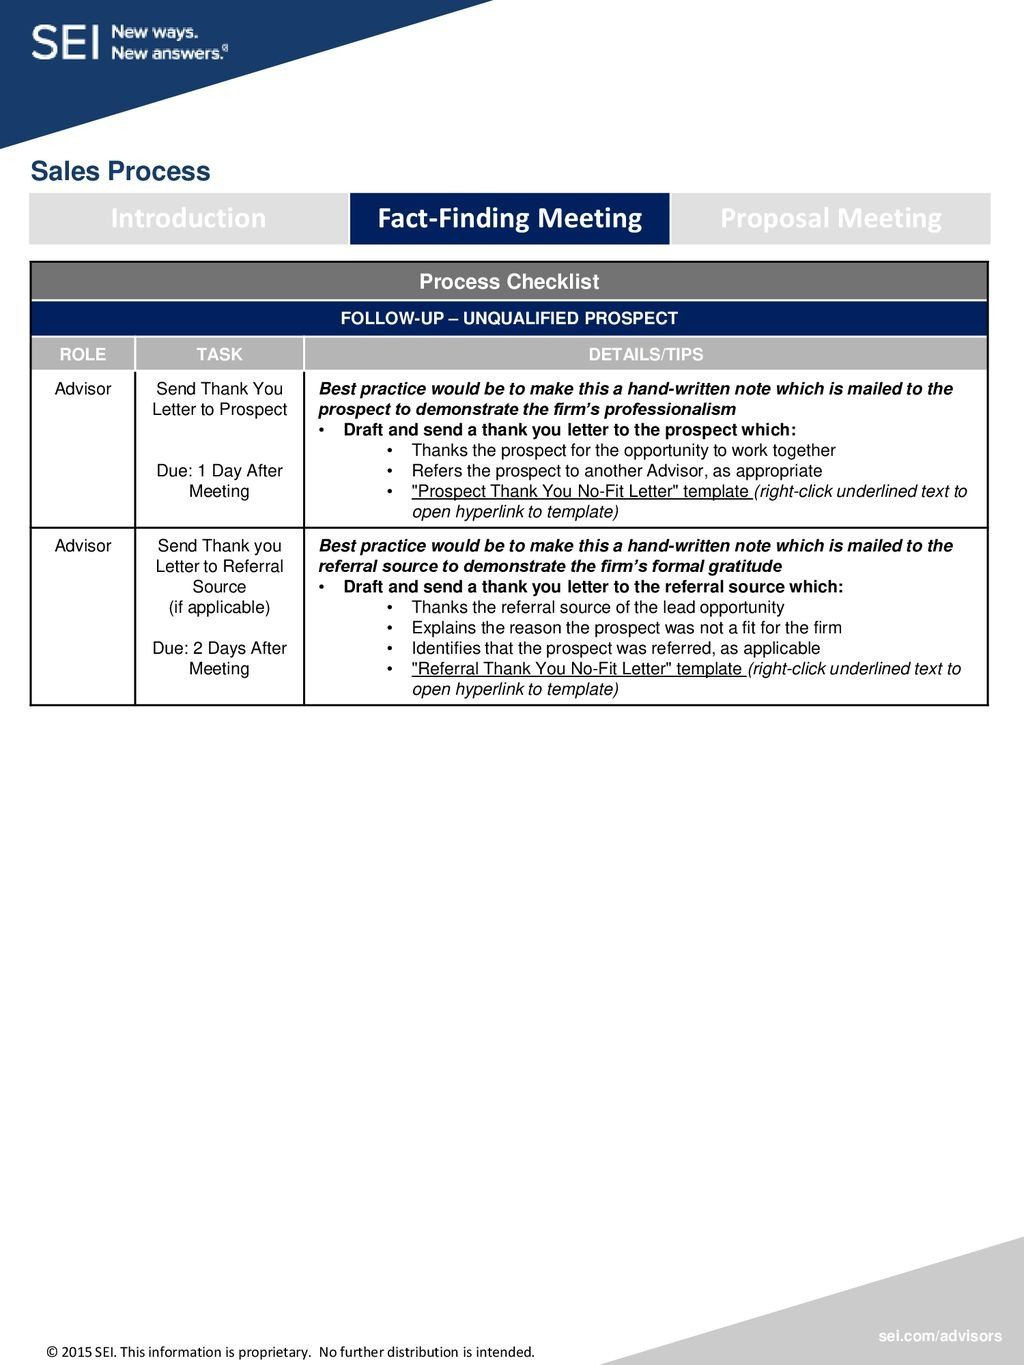 Prospect Meeting Agenda Template Introduction Fact Finding Meeting Proposal Meeting Ppt Agenda Template Meeting Agenda Template Meeting Agenda